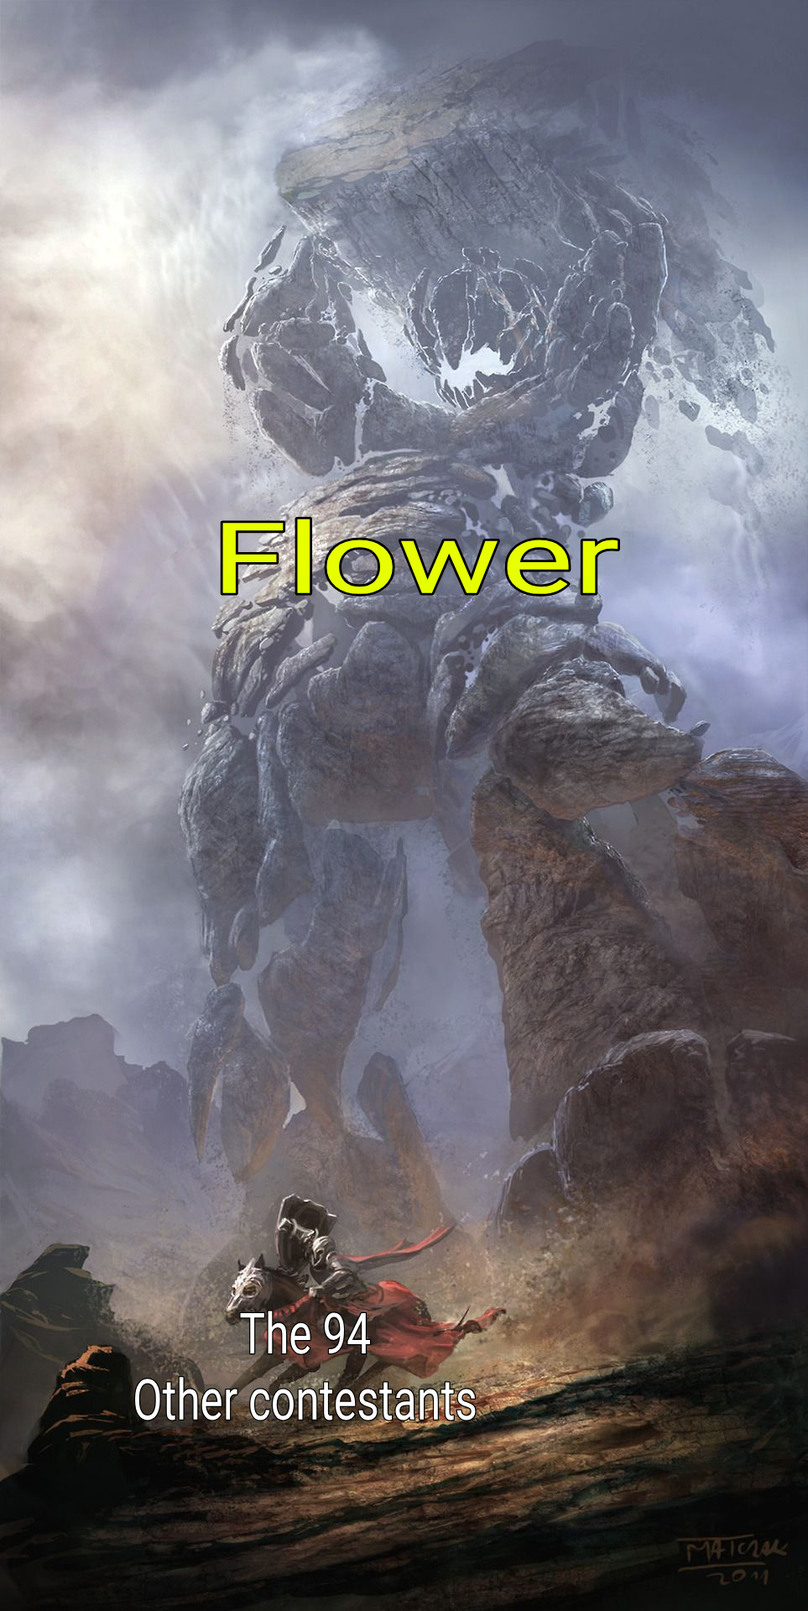 Flower is memedroid's exclusive meme of the month